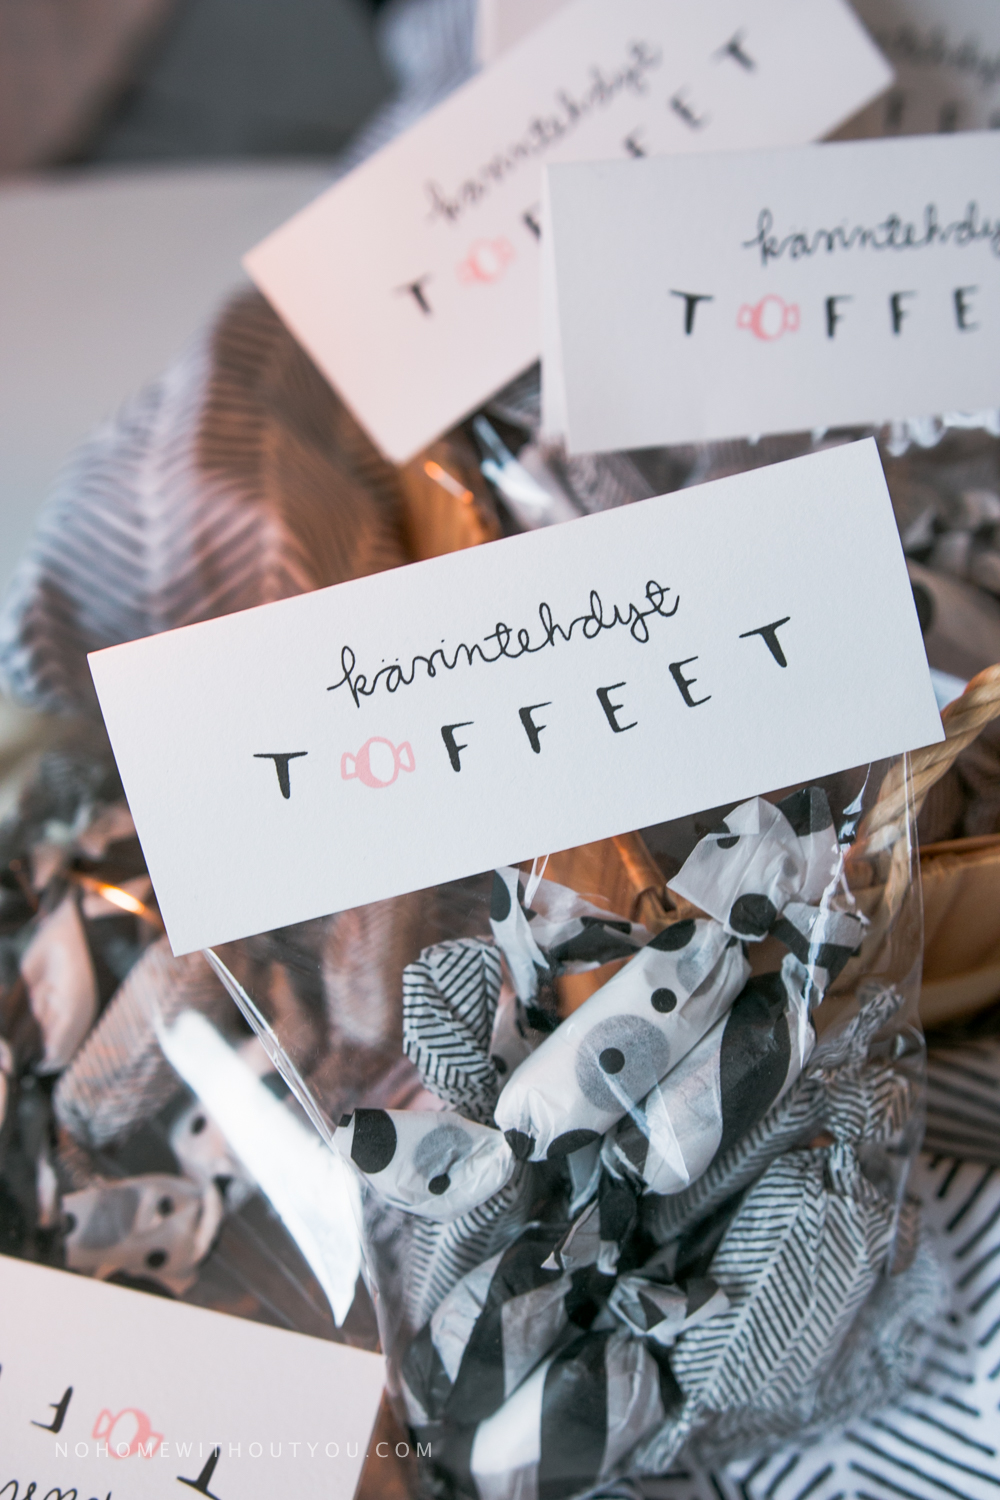 Homemade candy toffee treats - No Home Without You blog (2 of 3)